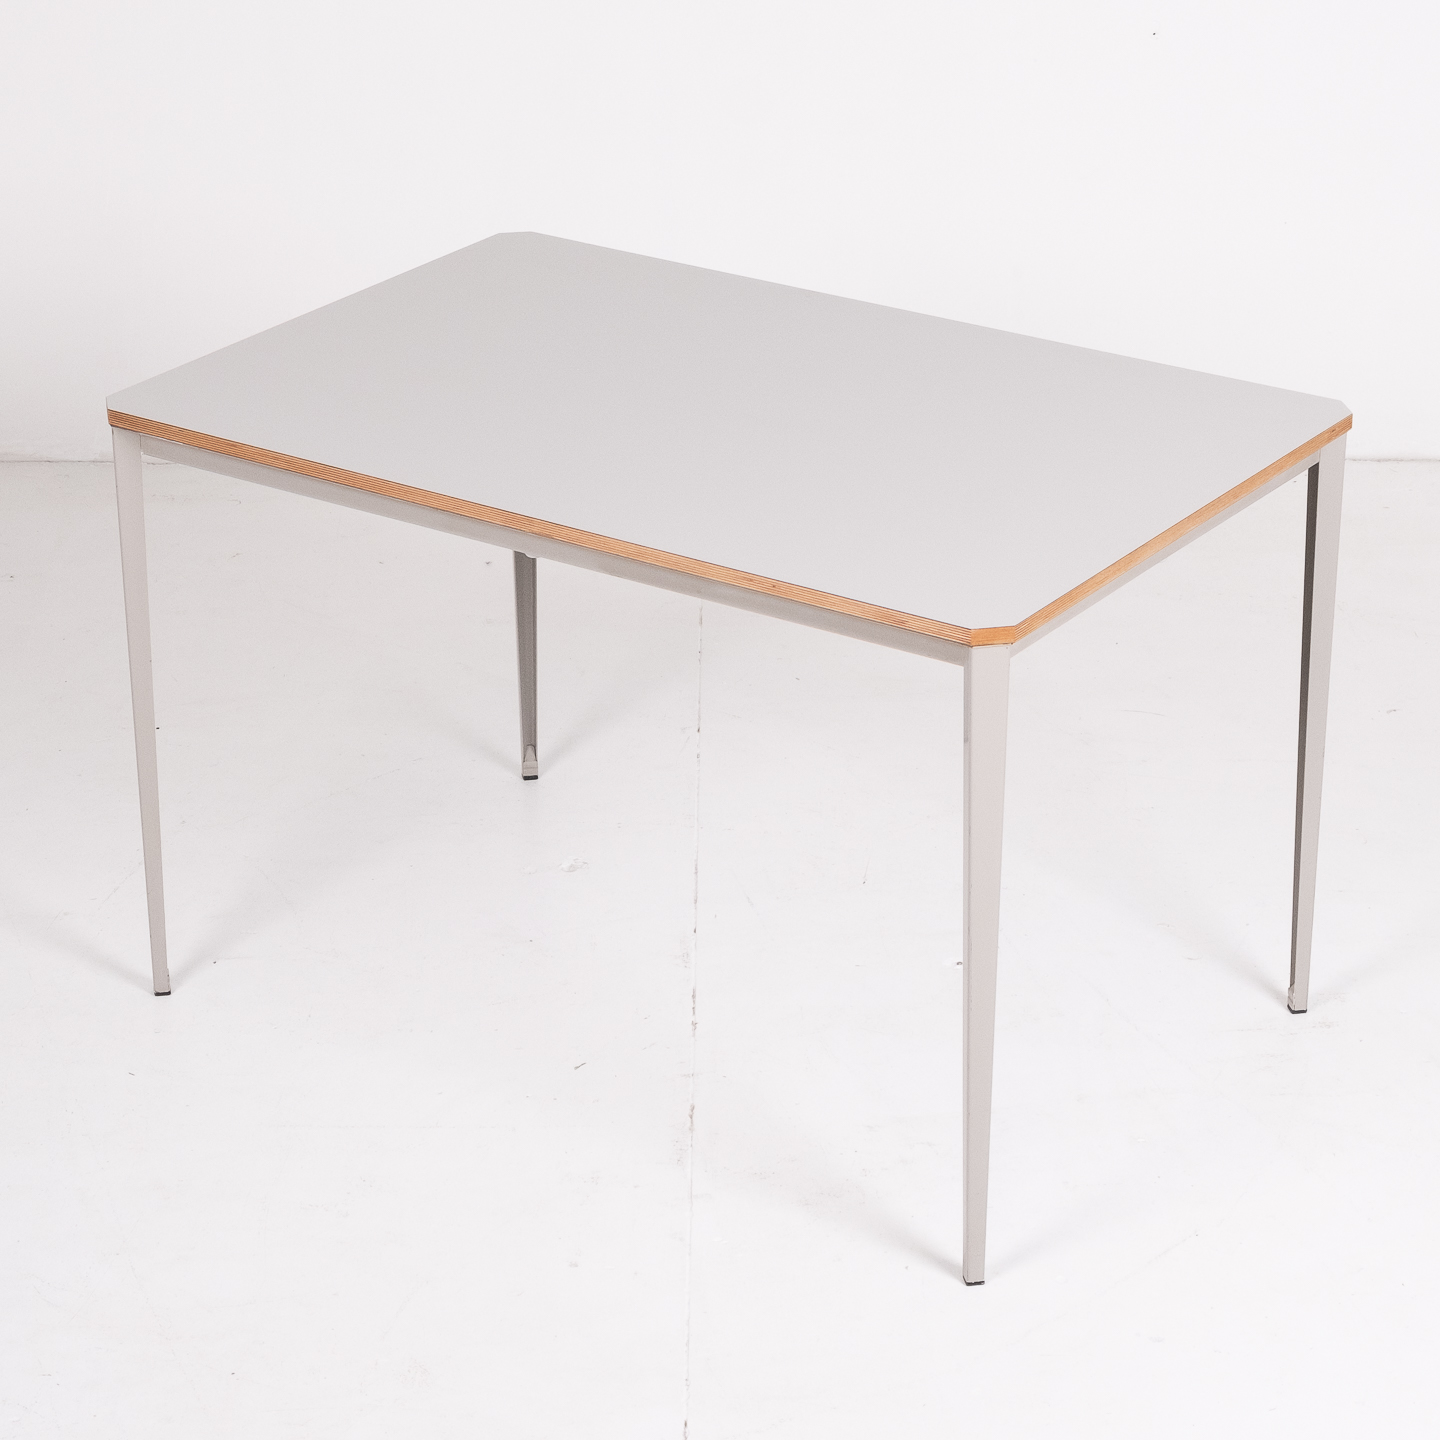 Recent Table By Wim Rietveld For Ahrend De Cirkel With Grey Steel Base, 1960s, The Netherlands70